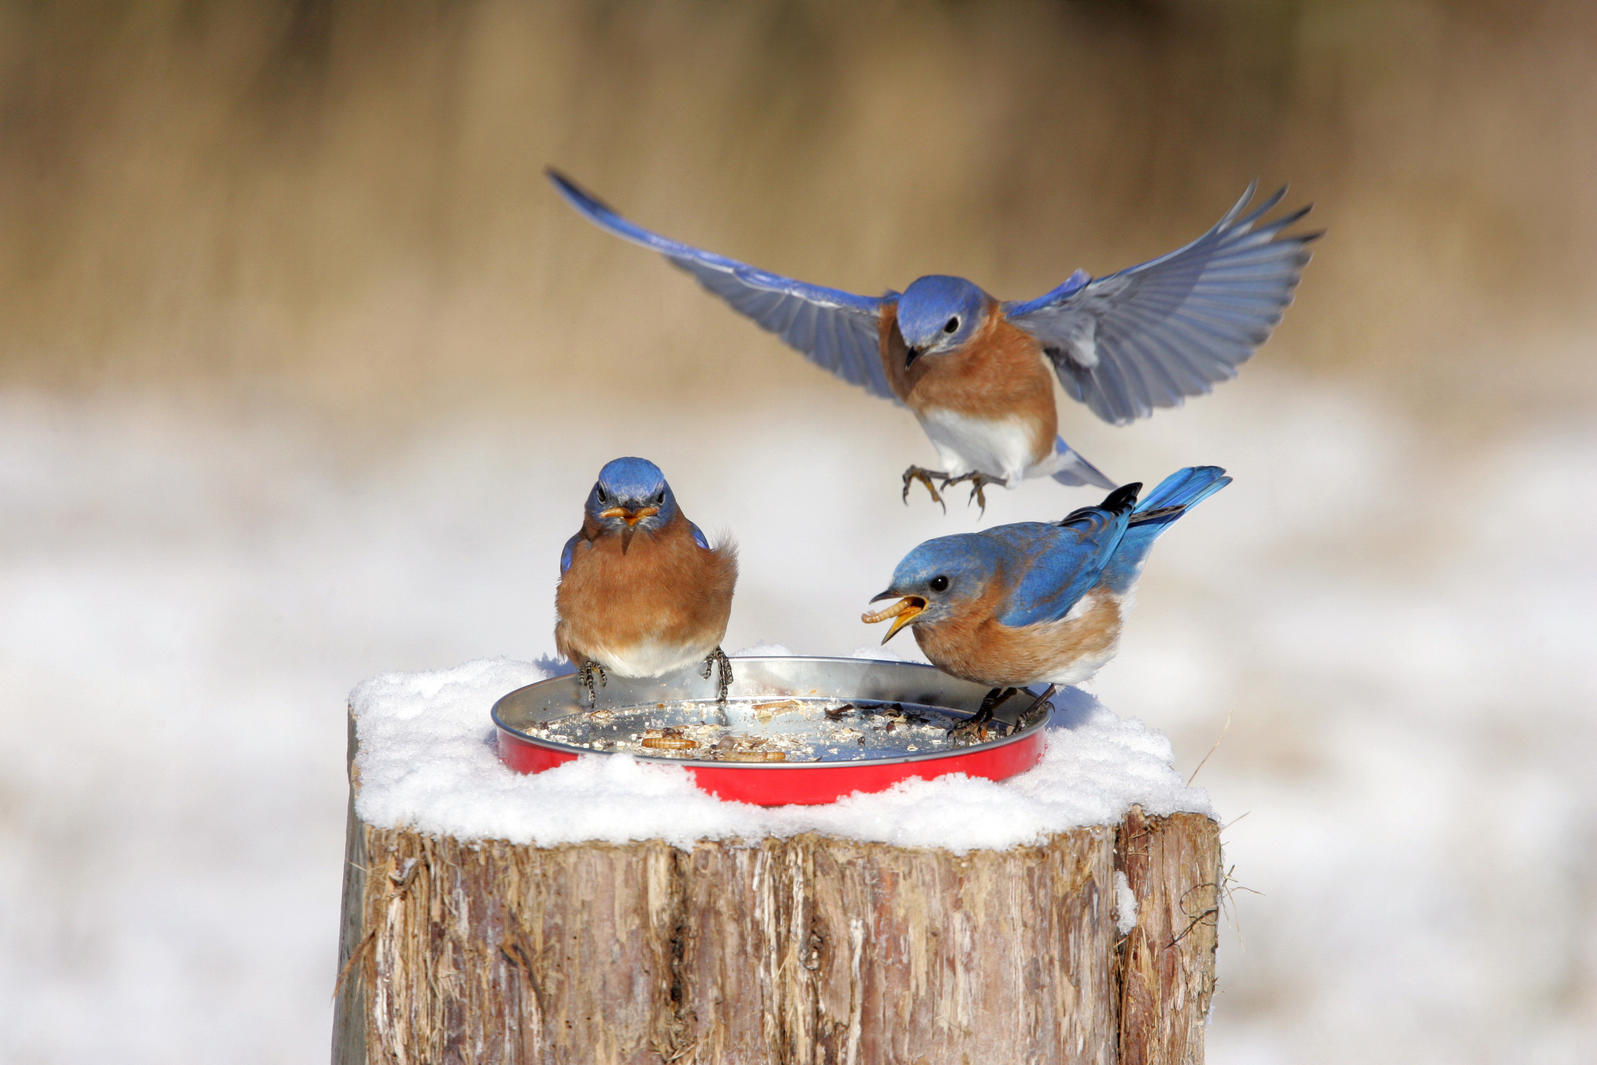 Three adult male Eastern Bluebird (Sialia sialis) feed on mealworms at garden feeder in snow, U.S. Credit: S & D & K Maslowski/Minden Pictures/AP Images